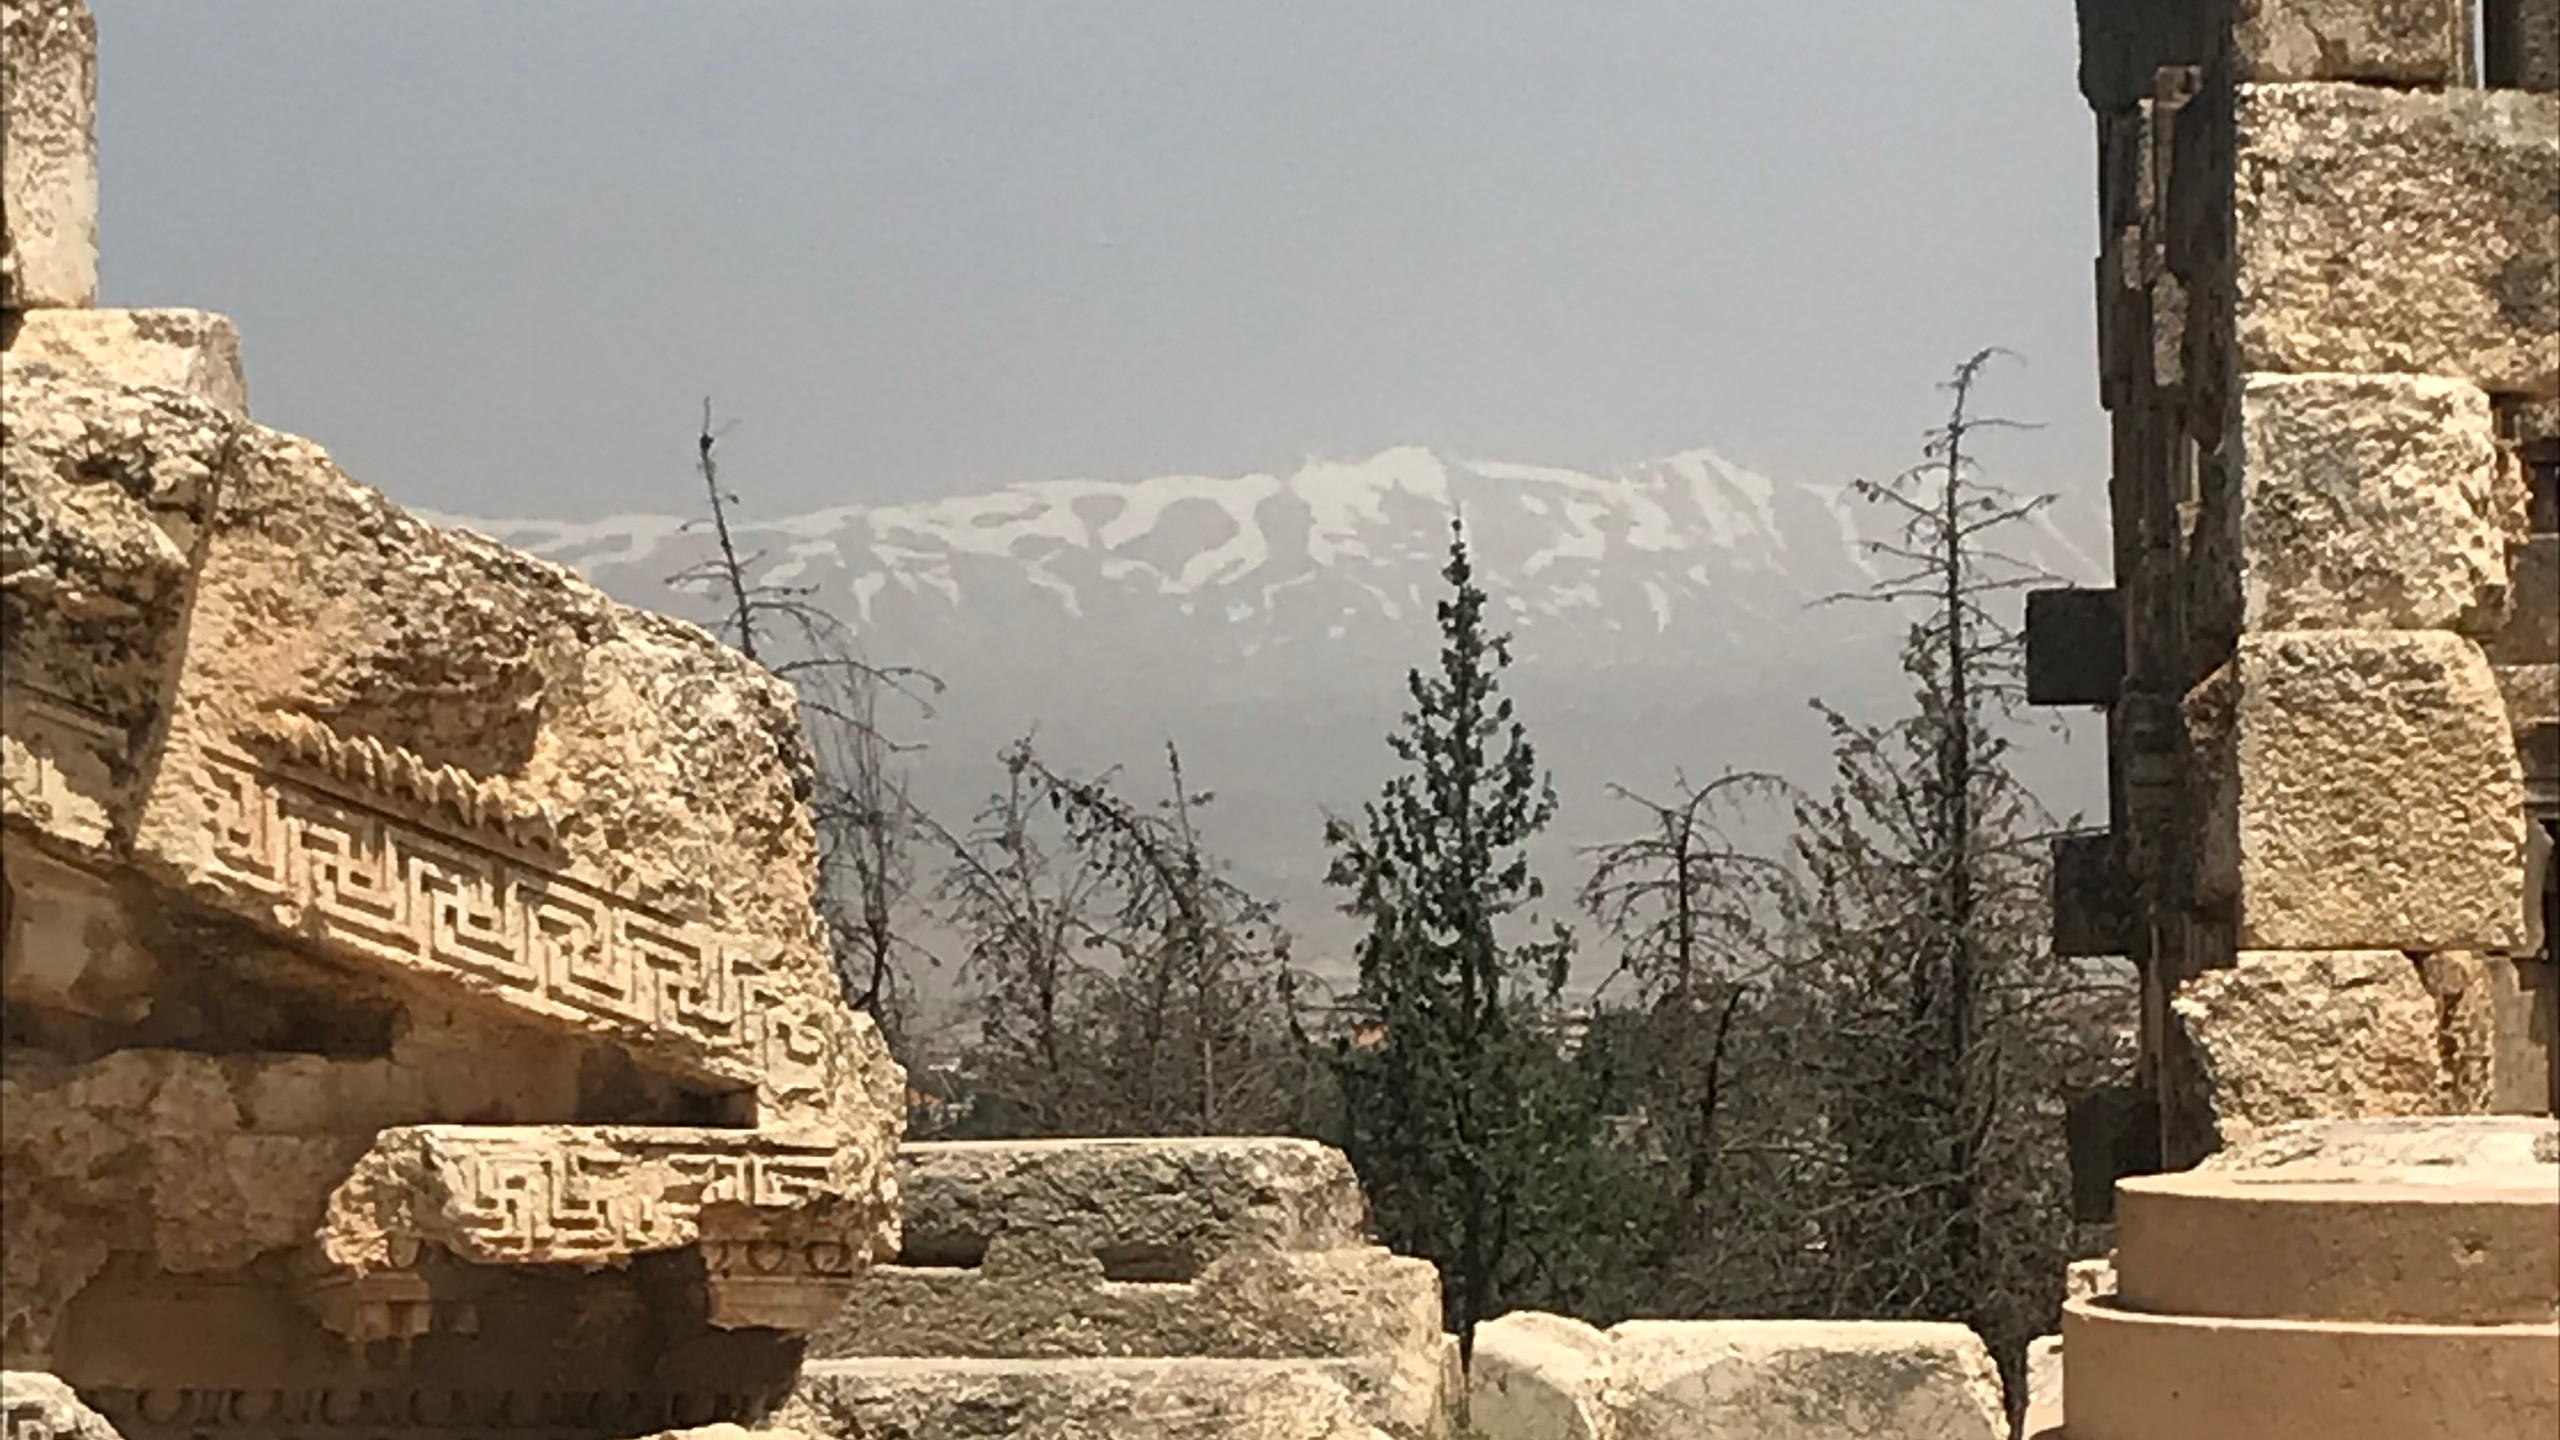 Snow-capped mountains ring the Bekaa Valley near Baalbek